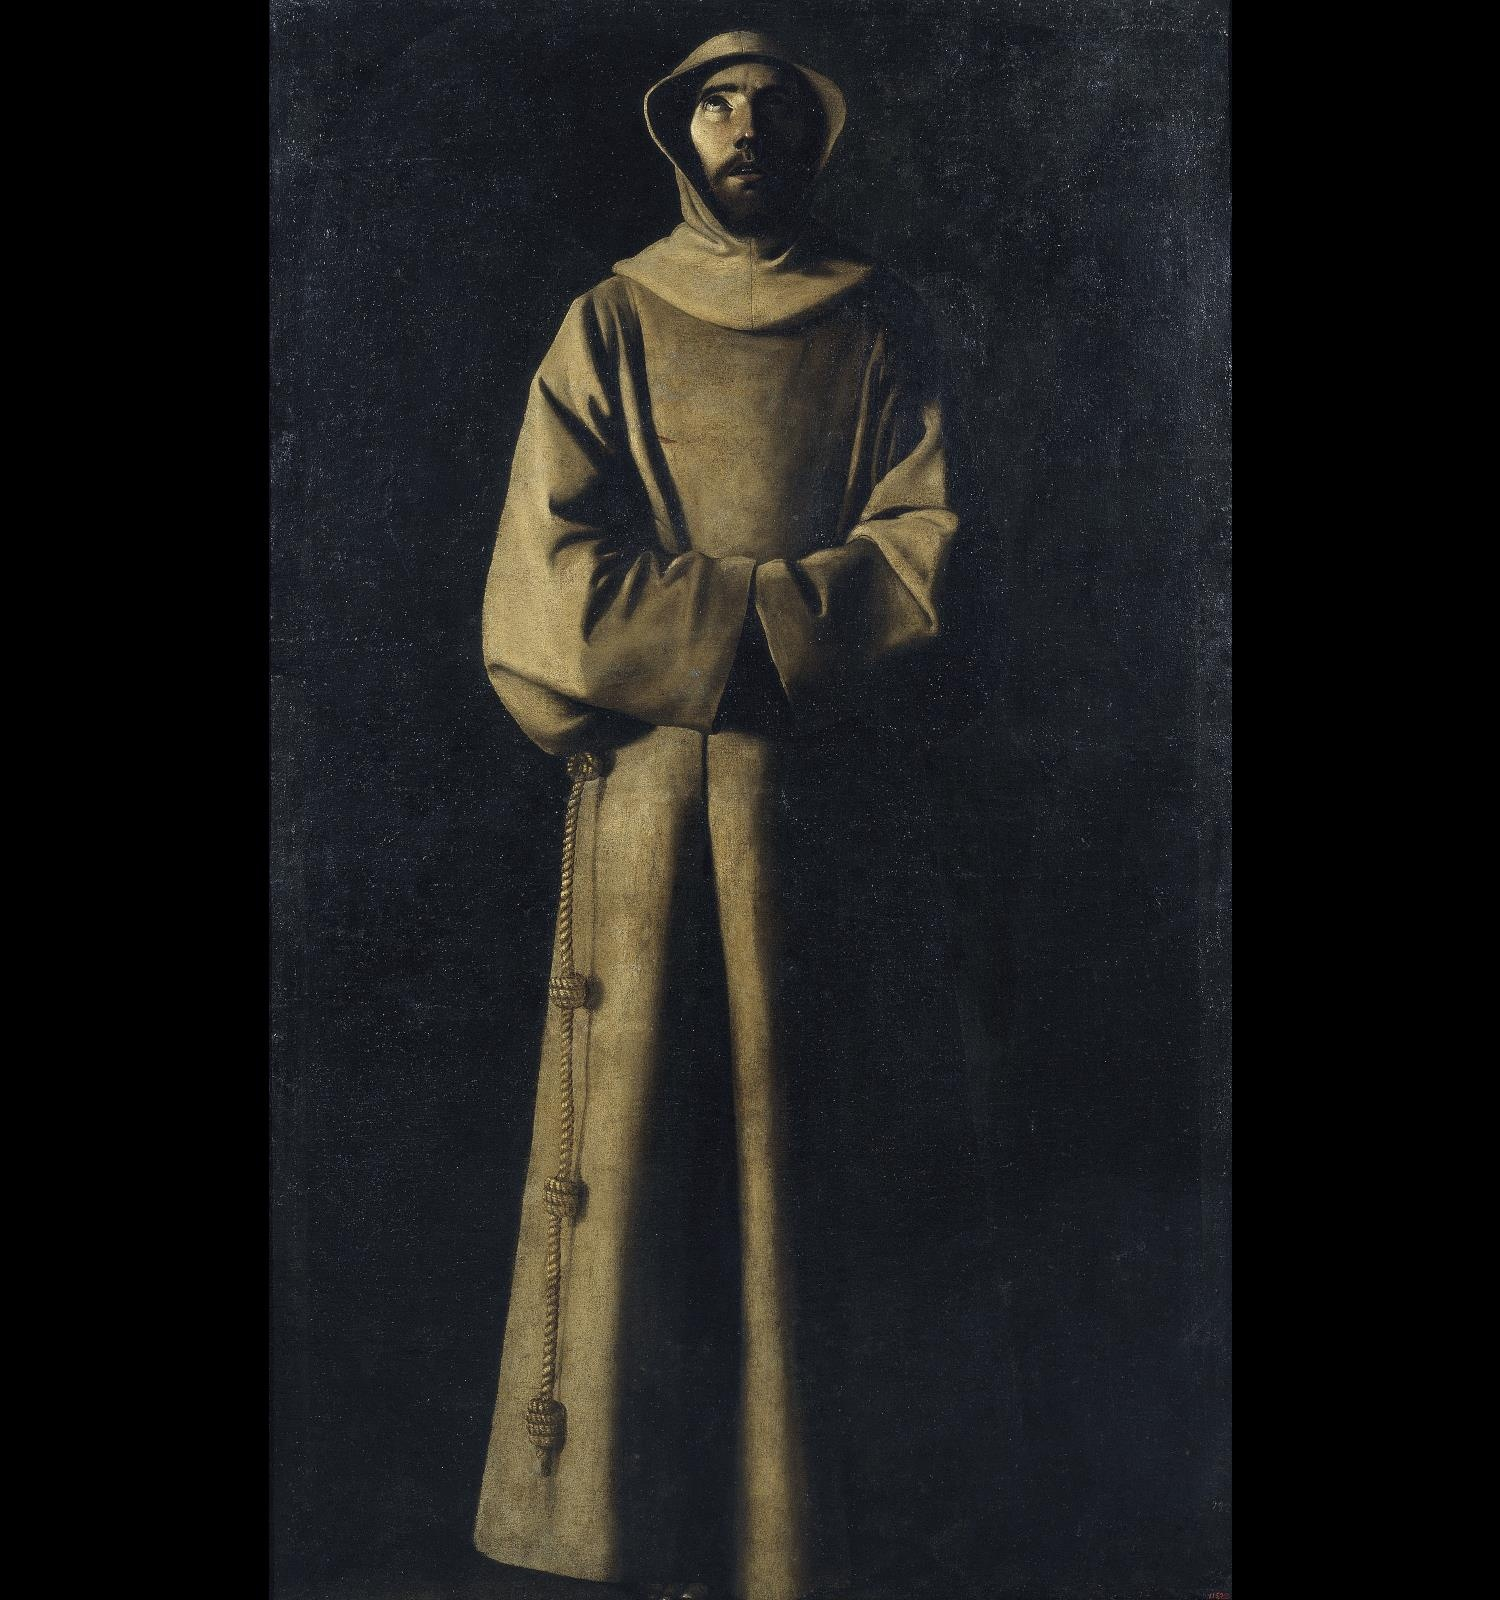 Saint Francis of Assisi according to Pope Nicholas V's Vision, Francisco de Zurbarán, circa 1640